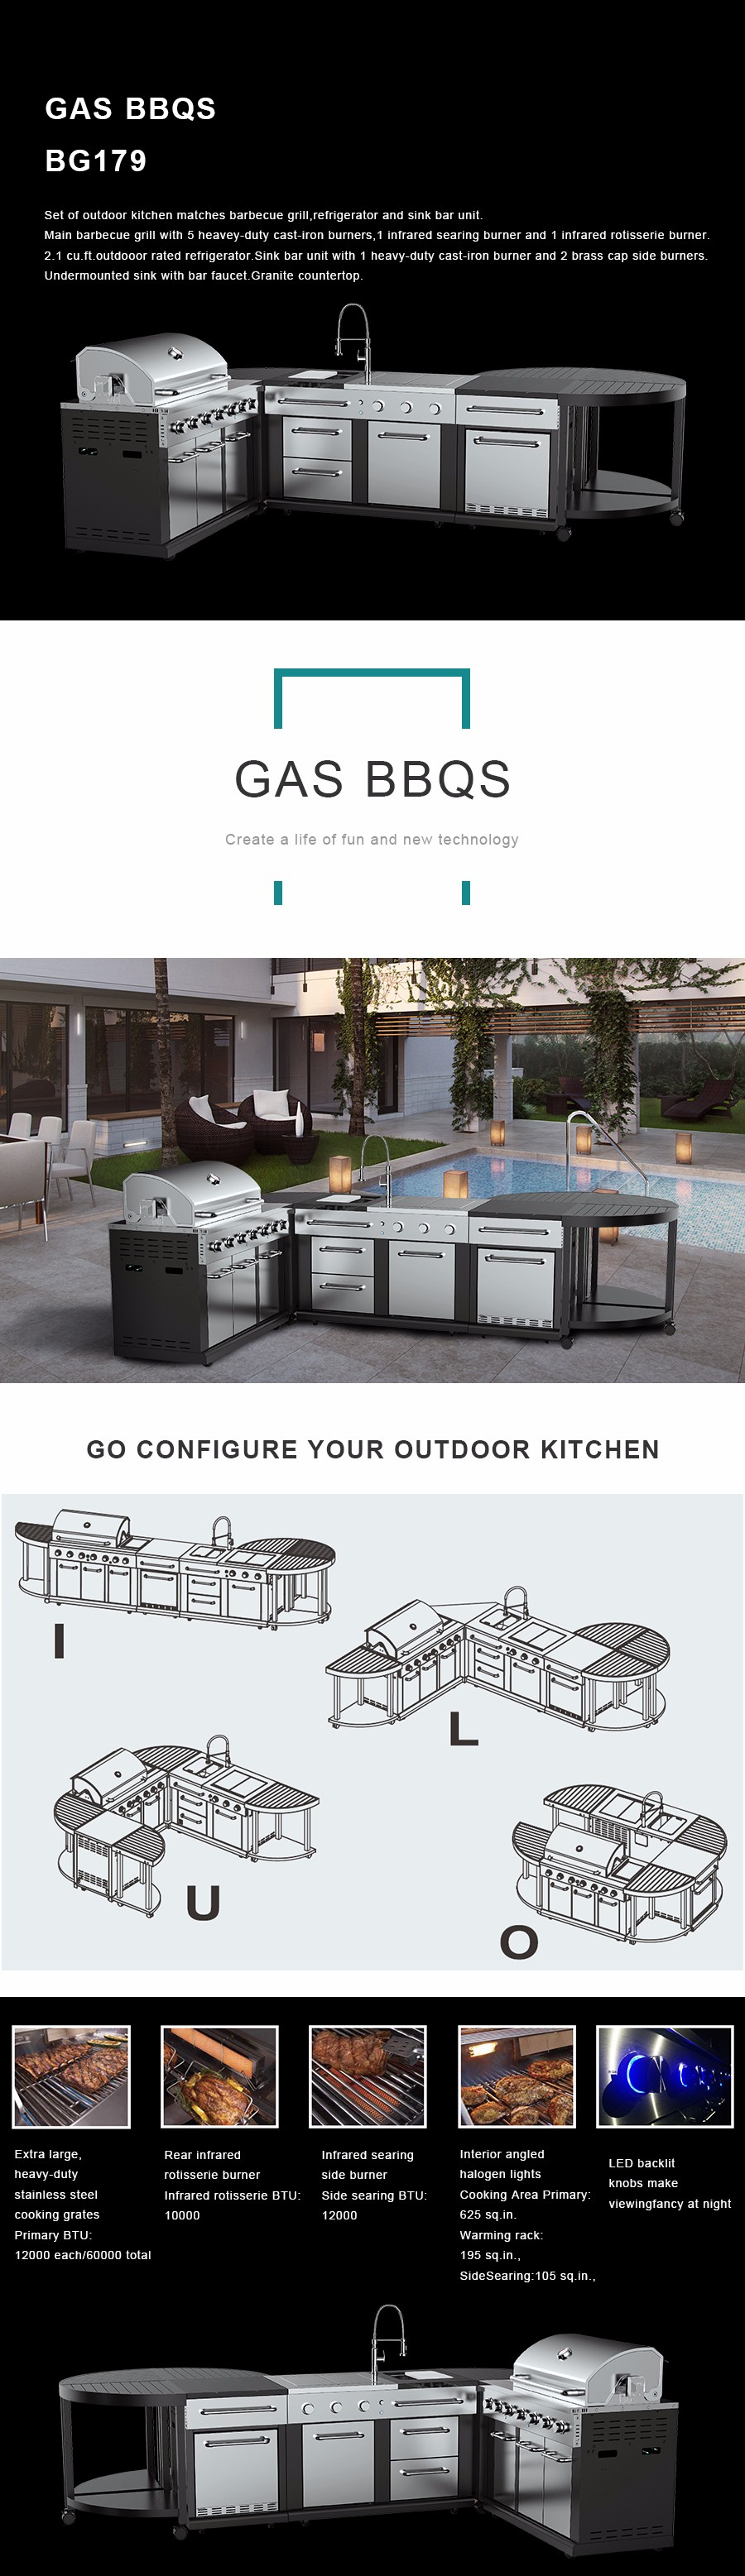 BBQ grills|Heating & Cooling|Valve & accessories|Kitchens & appliances